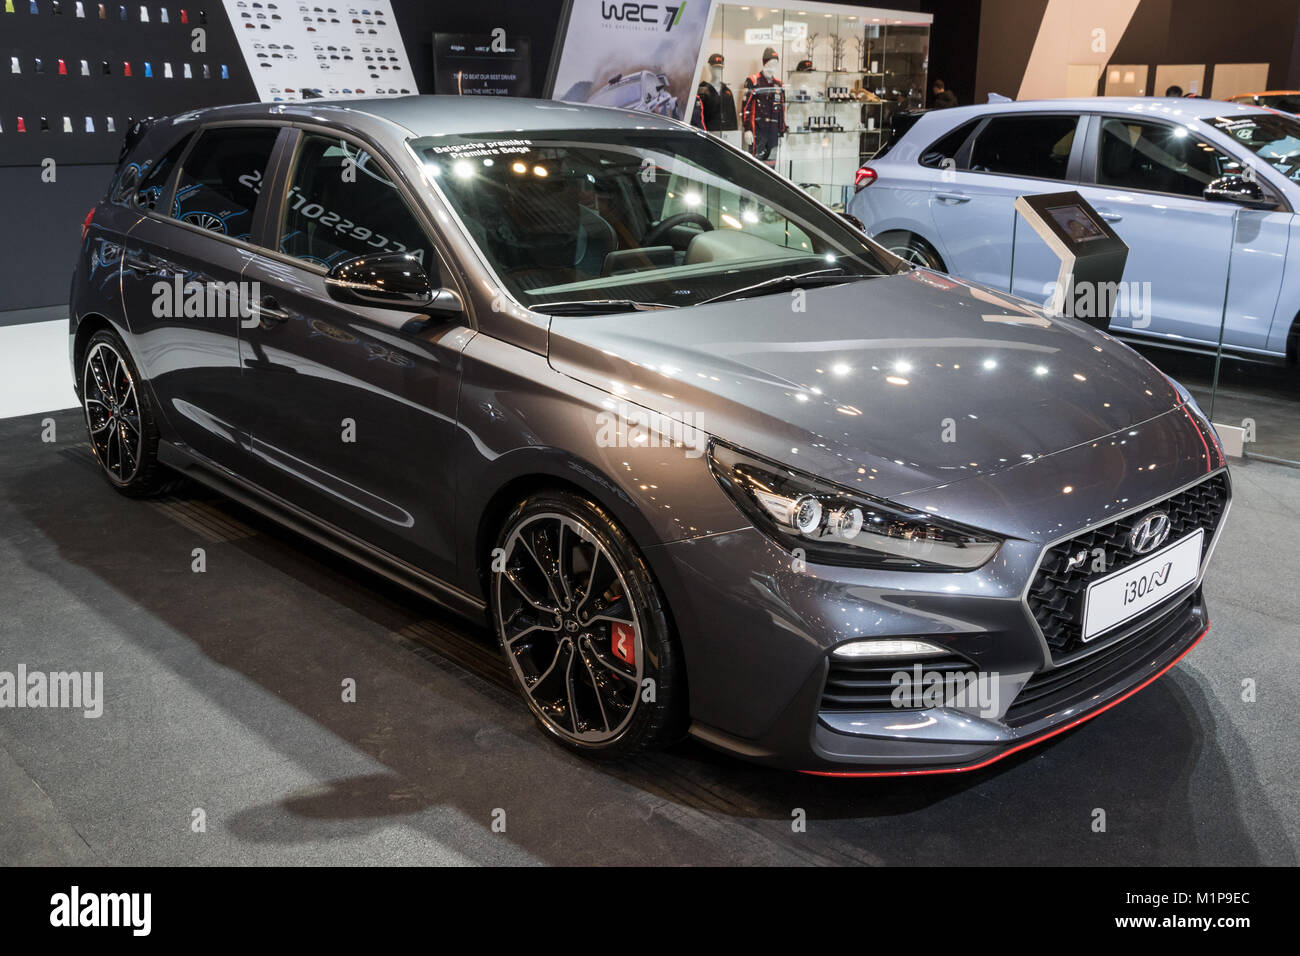 Hyundai I30n >> Hyundai I30n Stock Photos & Hyundai I30n Stock Images - Alamy